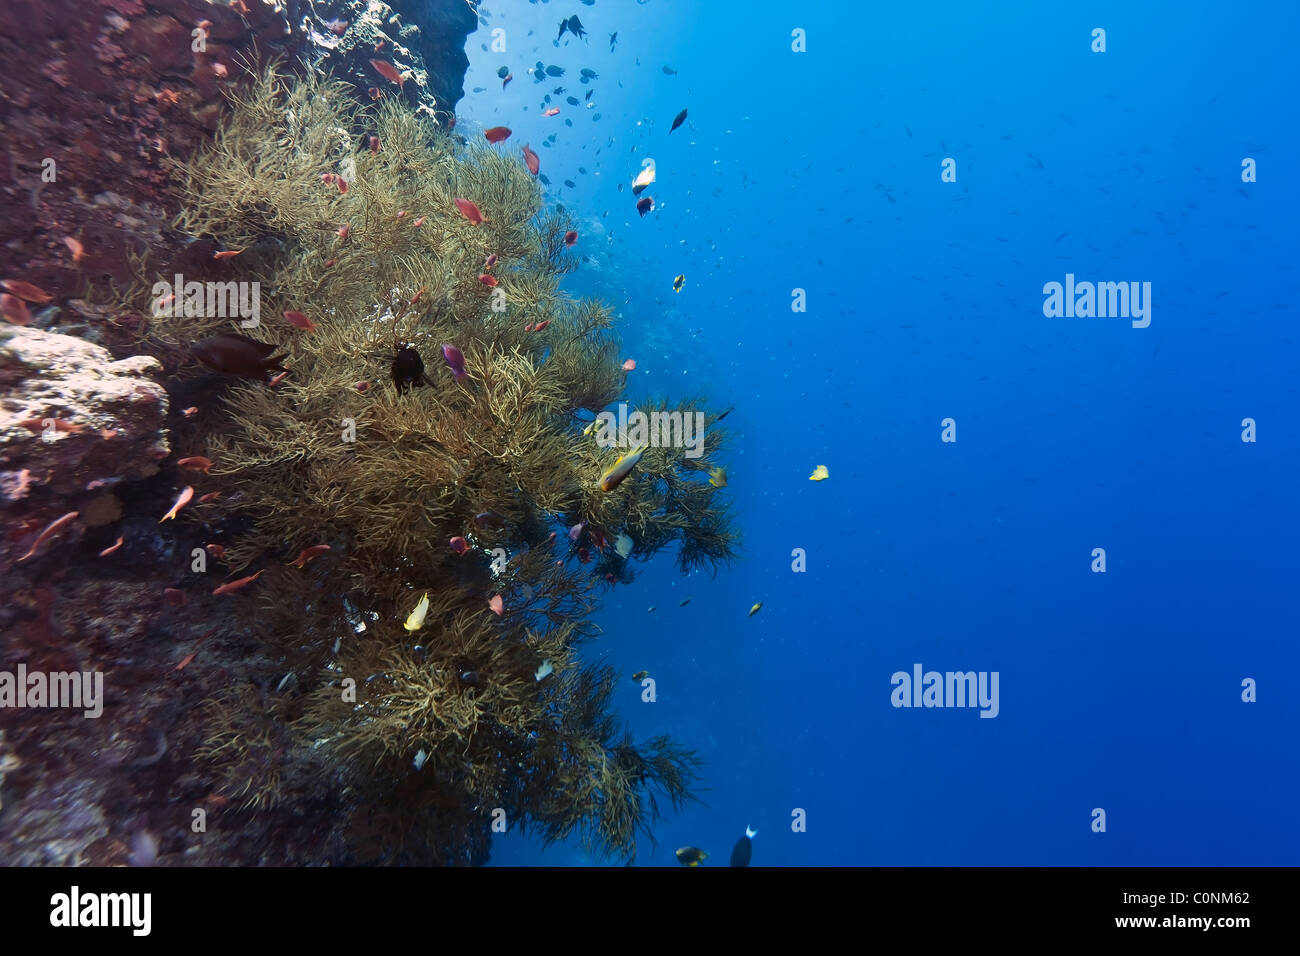 Sloping coral wall off the coast of Bunaken island in North Sulawesi, Indonesia - Stock Image